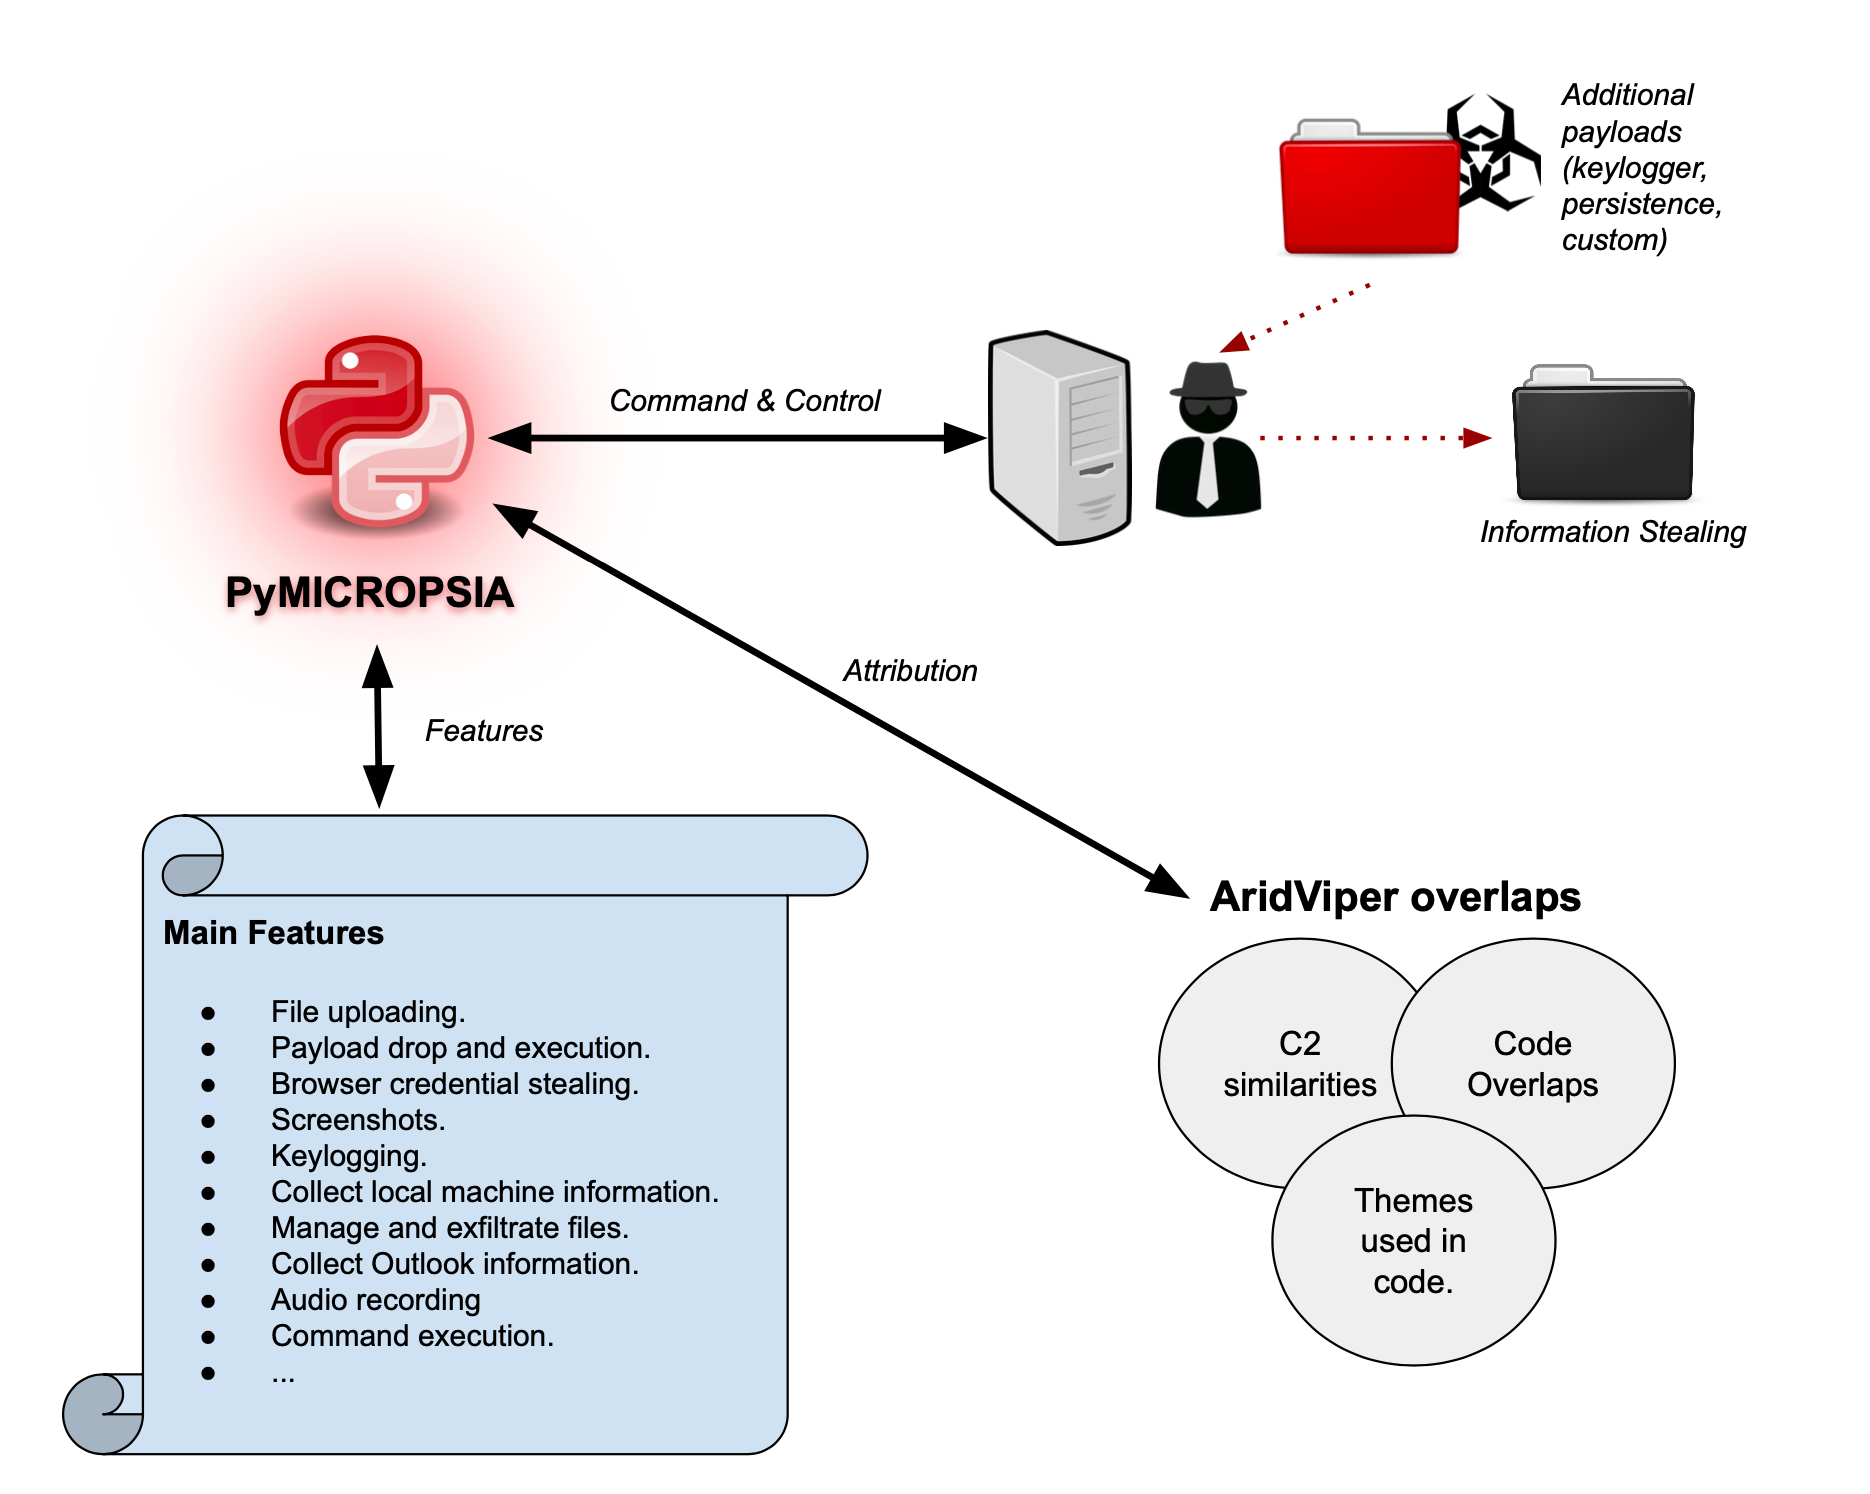 Main features of PyMICROPSIA include file uploading, payload drop and execution, browser credential stealing, screenshots, keylogging, collect local machine information, manage and exfiltrate files, collect Outlook information, audio recording and command execution.